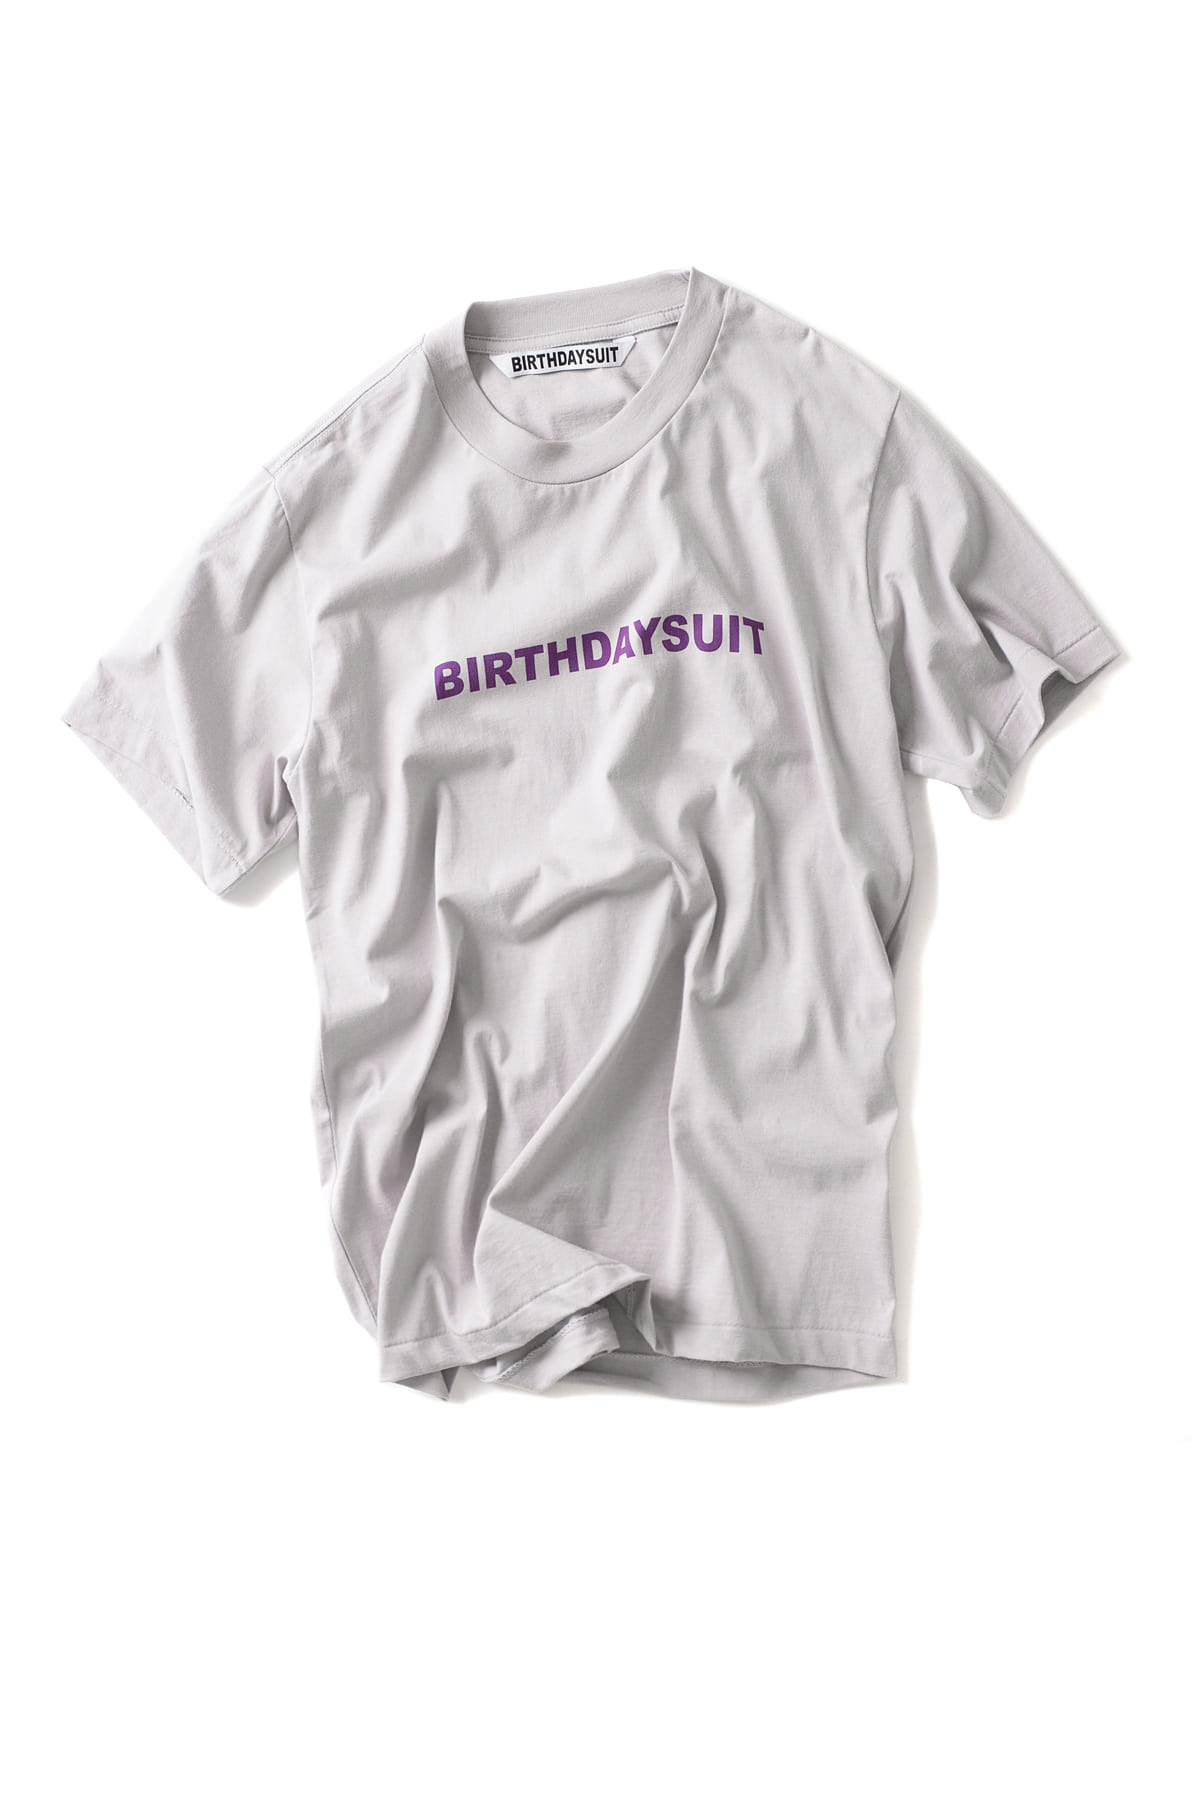 BIRTHDAYSUIT : LOGO Tee (Welchs)